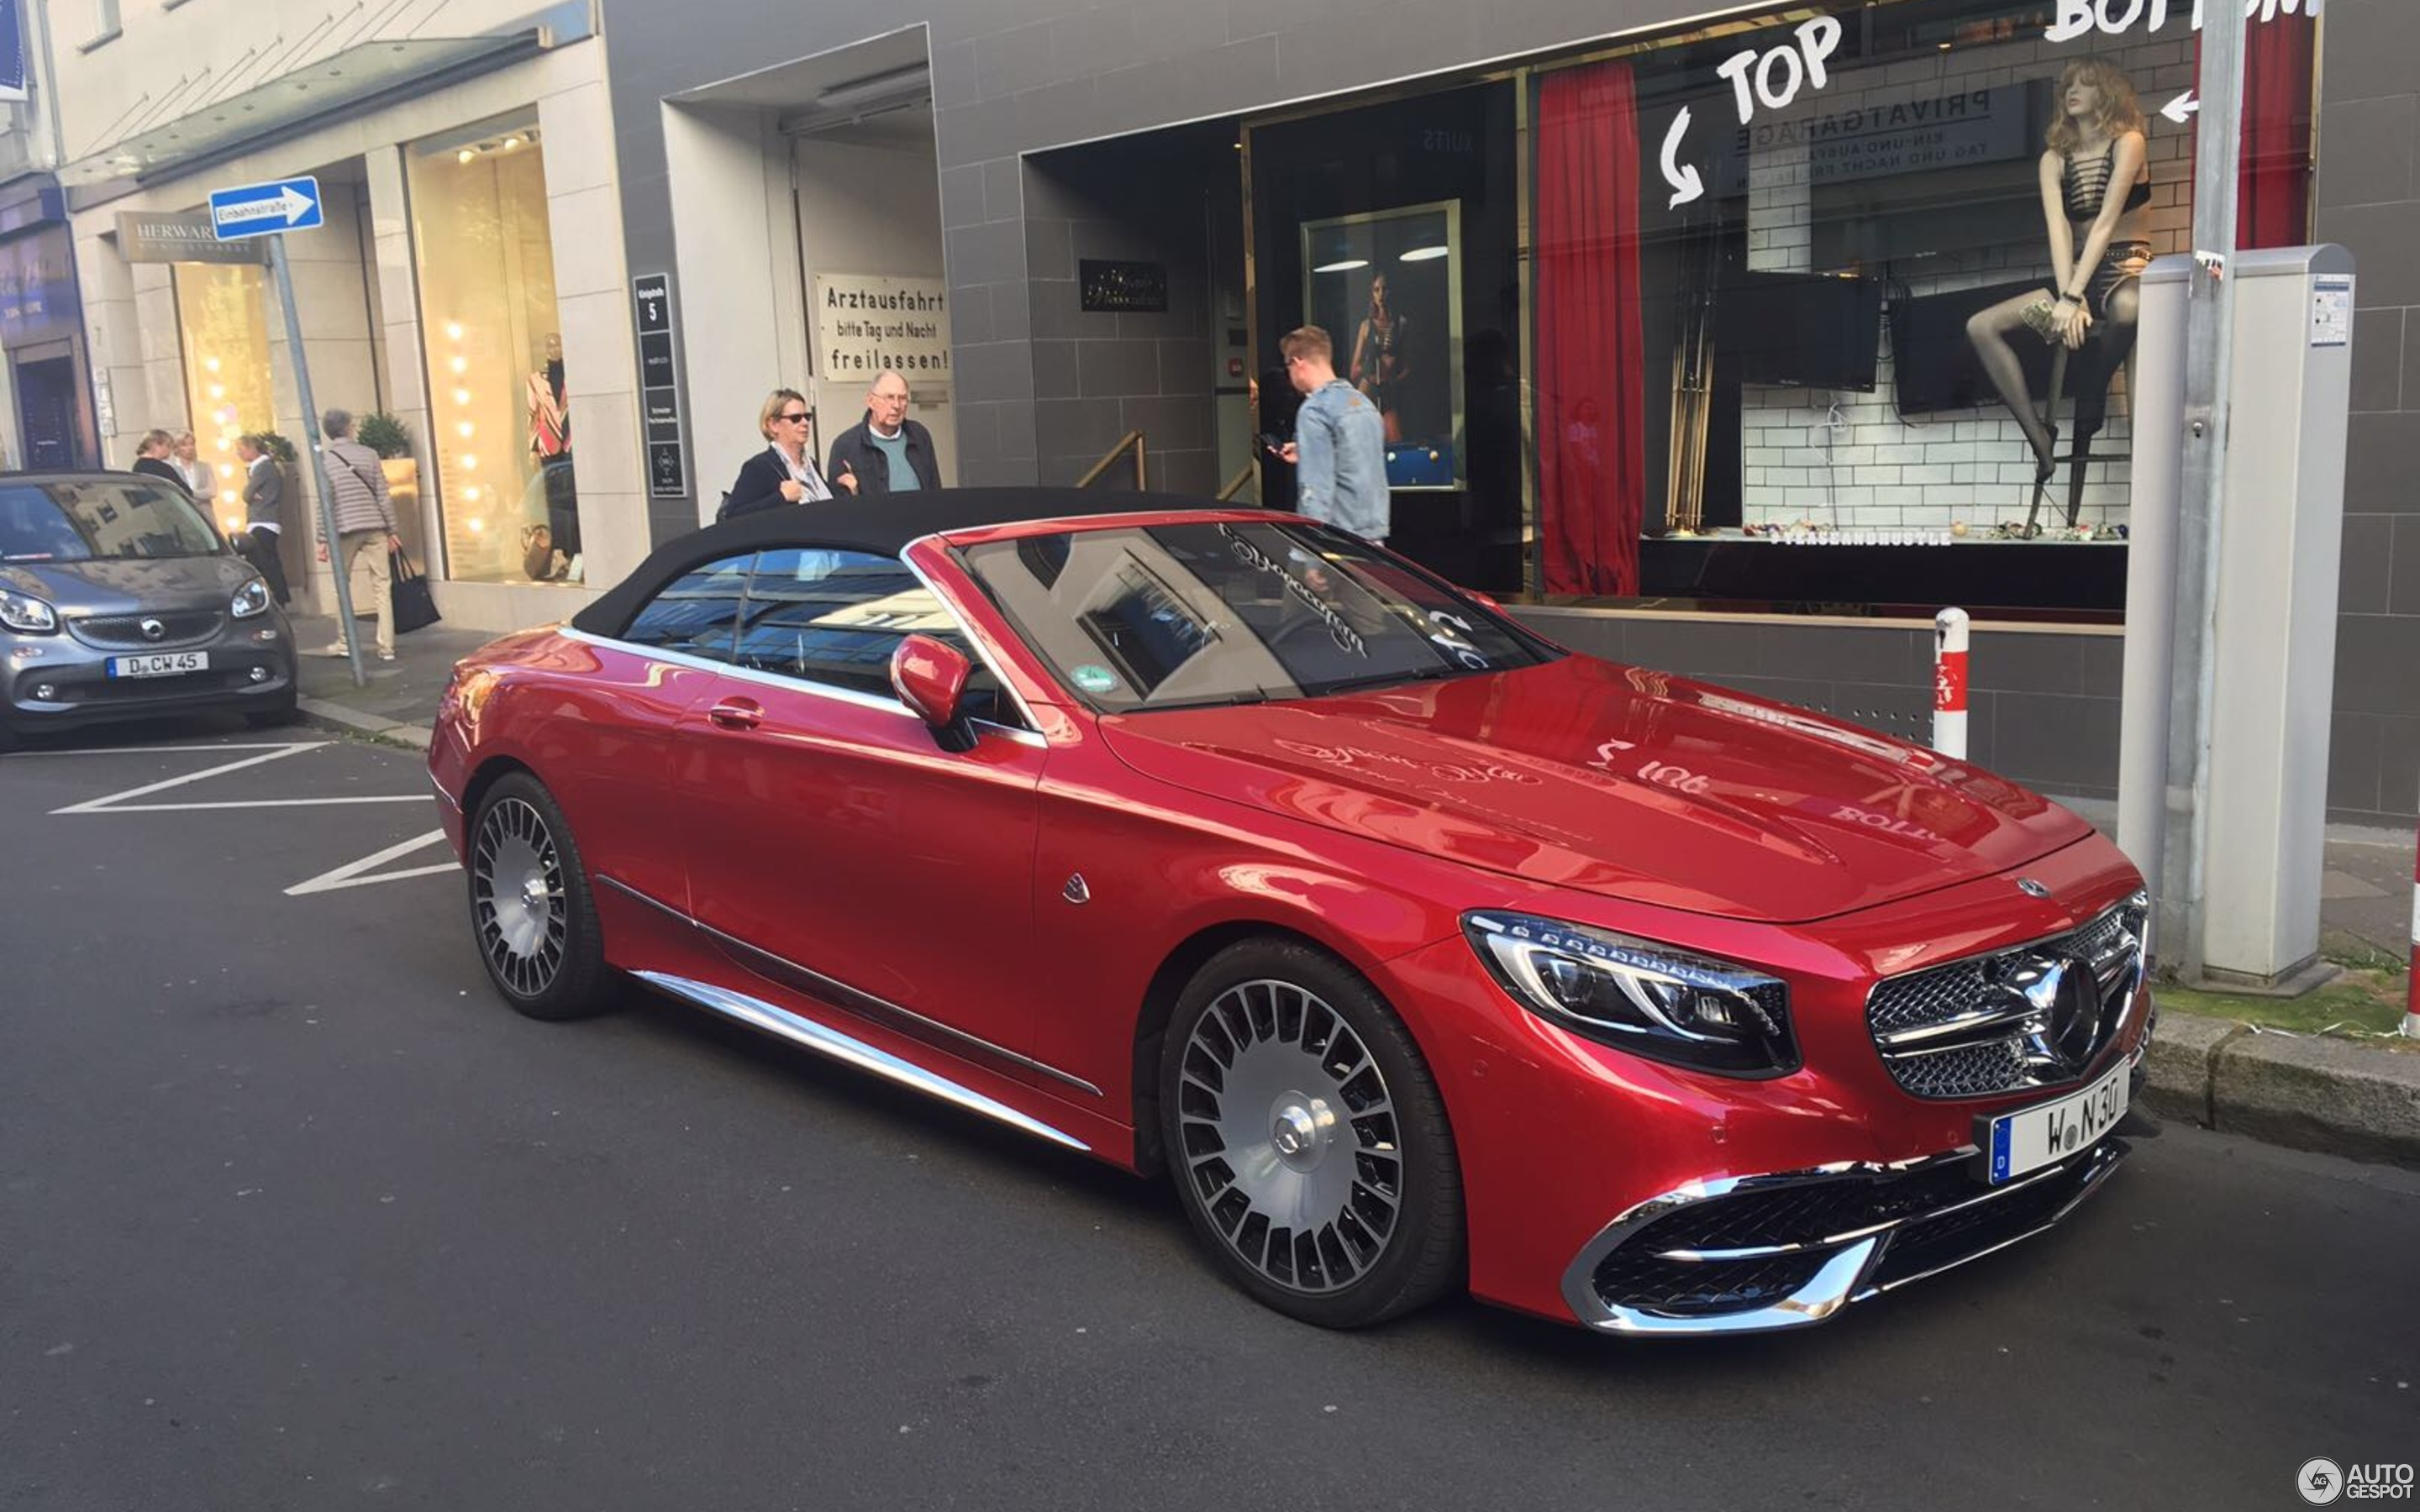 https://ag-spots-2017.o.auroraobjects.eu/2017/10/14/other/2880-1800-crop-mercedes-maybach-s650-cabriolet-c203614102017160951_1.jpg